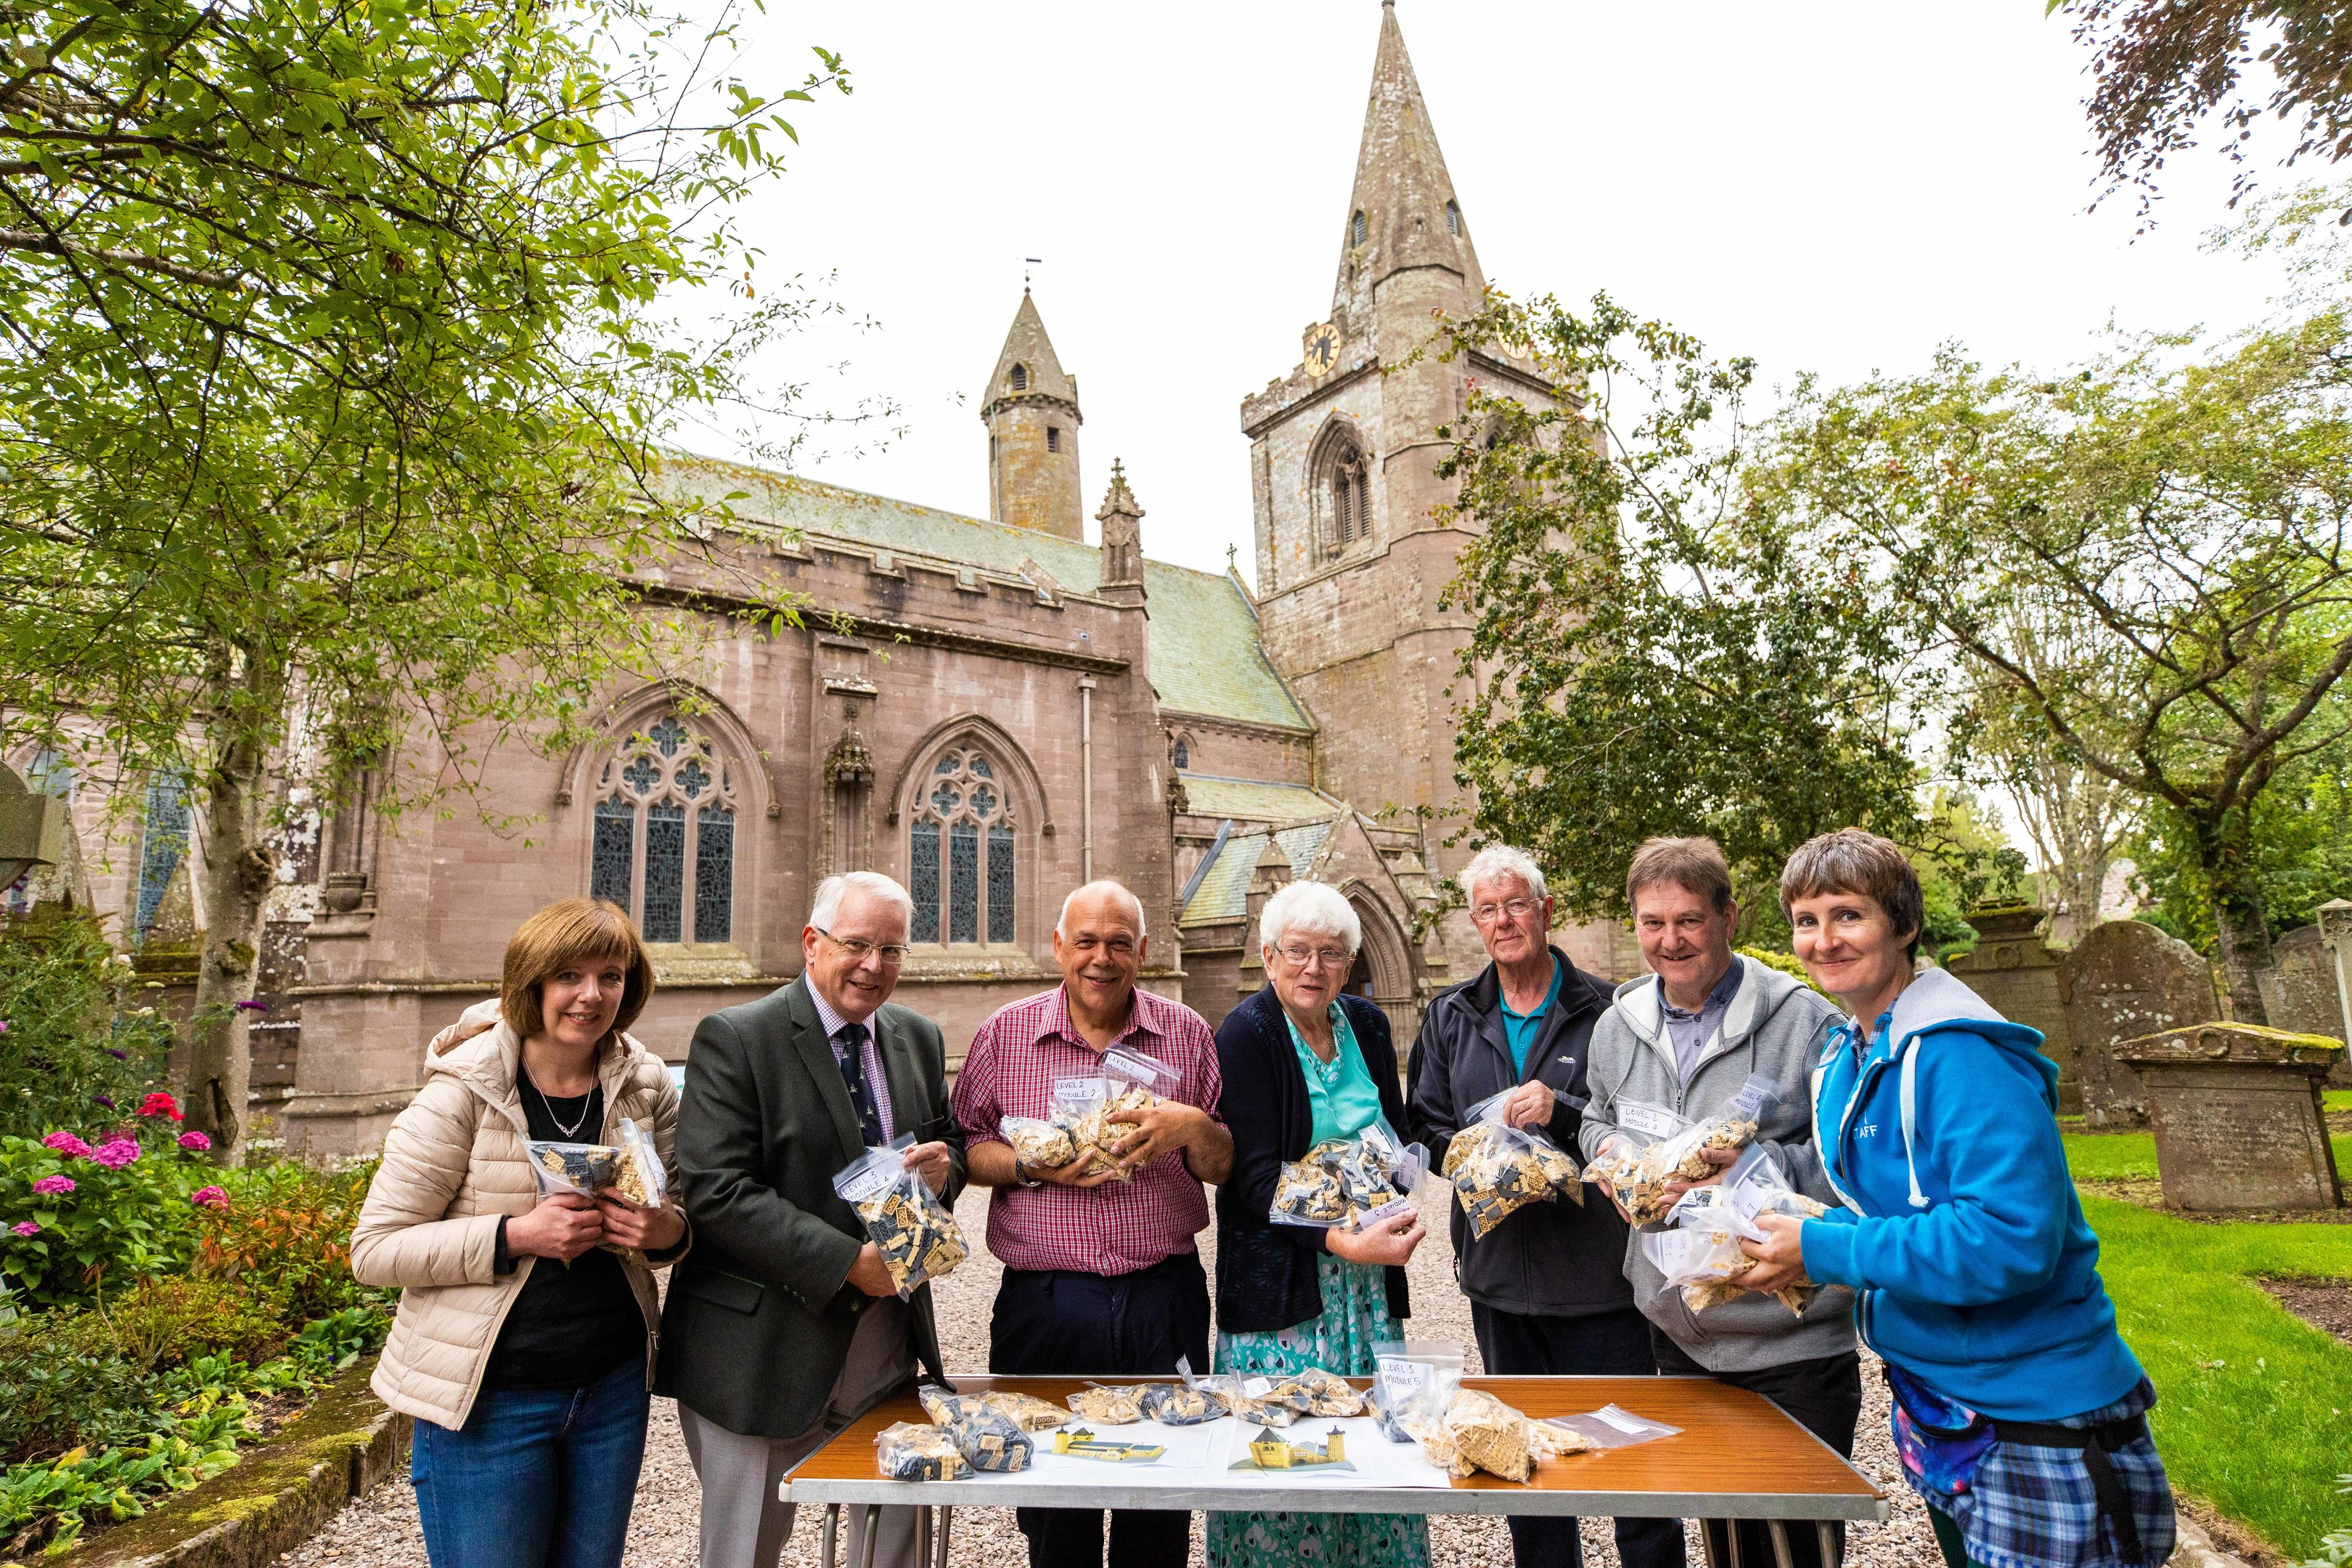 Claire Scrimgeour, Stanley Callaghan, Steve Dempsey, Irene Gillies, George Mitchell, Gordon Strachan and Caitlin McIlroy with the pieces to build the Lego Brechin Cathedral.